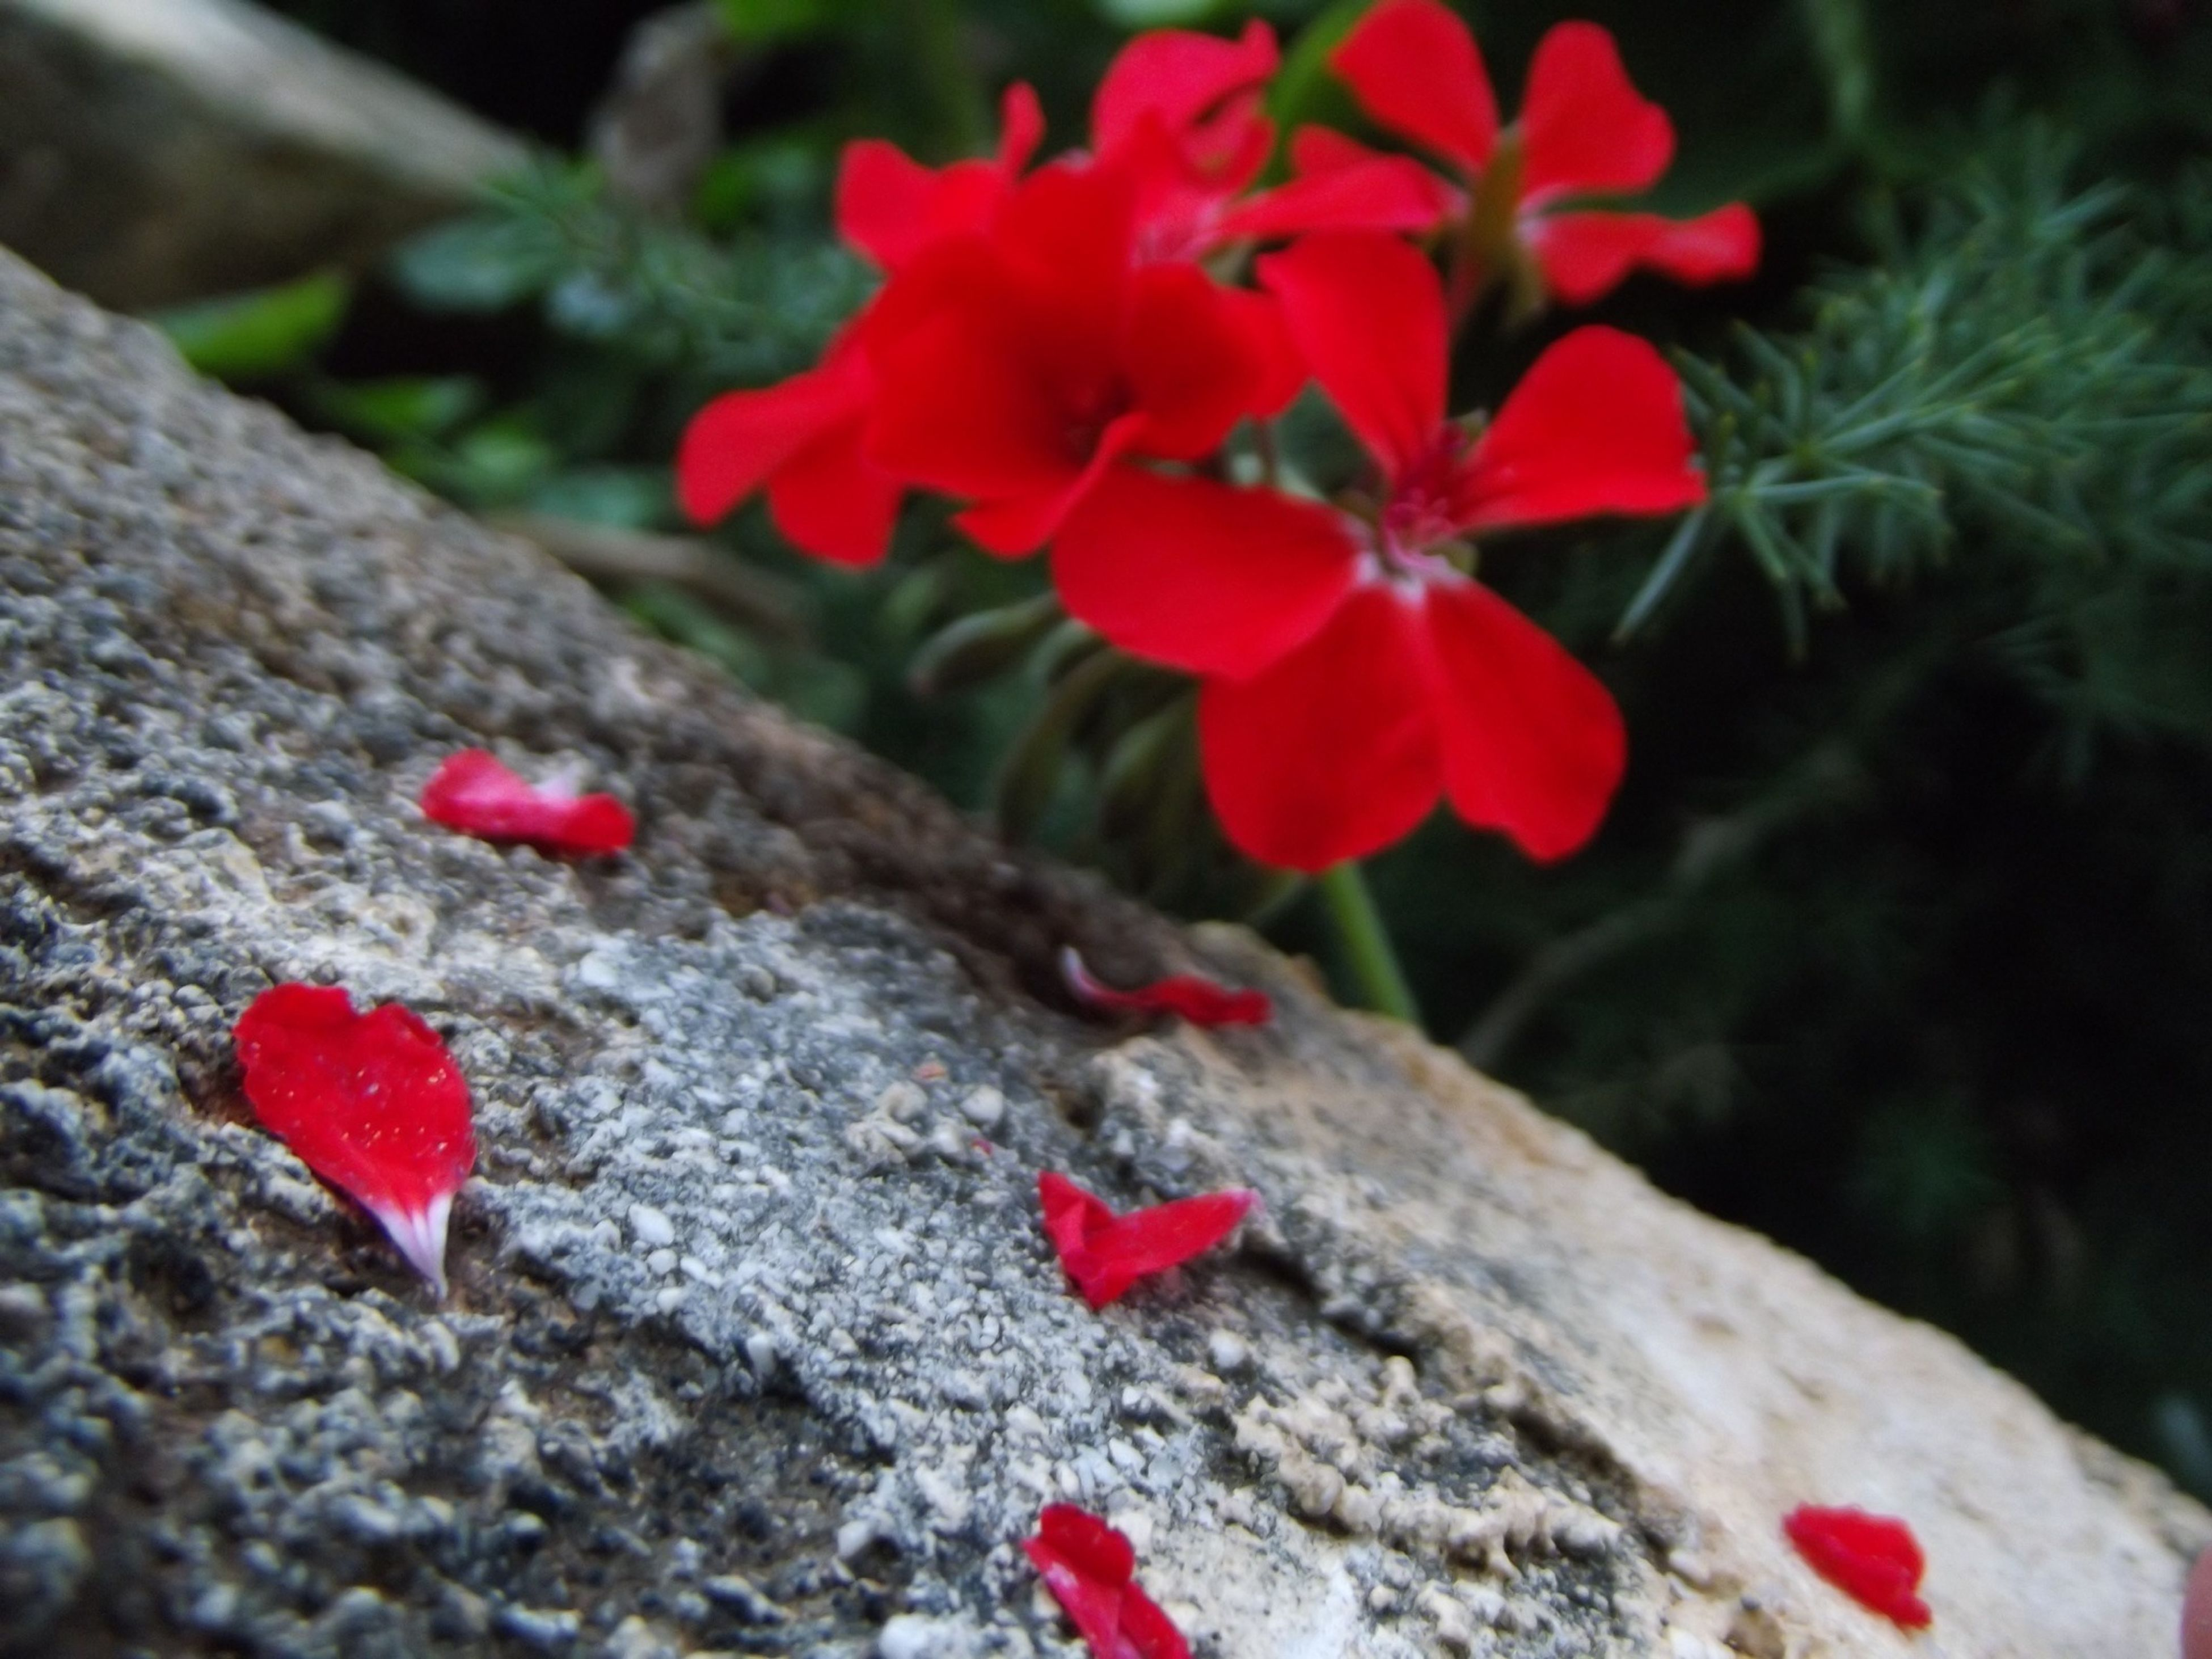 red, flower, petal, fragility, close-up, growth, focus on foreground, freshness, plant, nature, selective focus, beauty in nature, high angle view, day, leaf, pink color, flower head, blooming, outdoors, no people